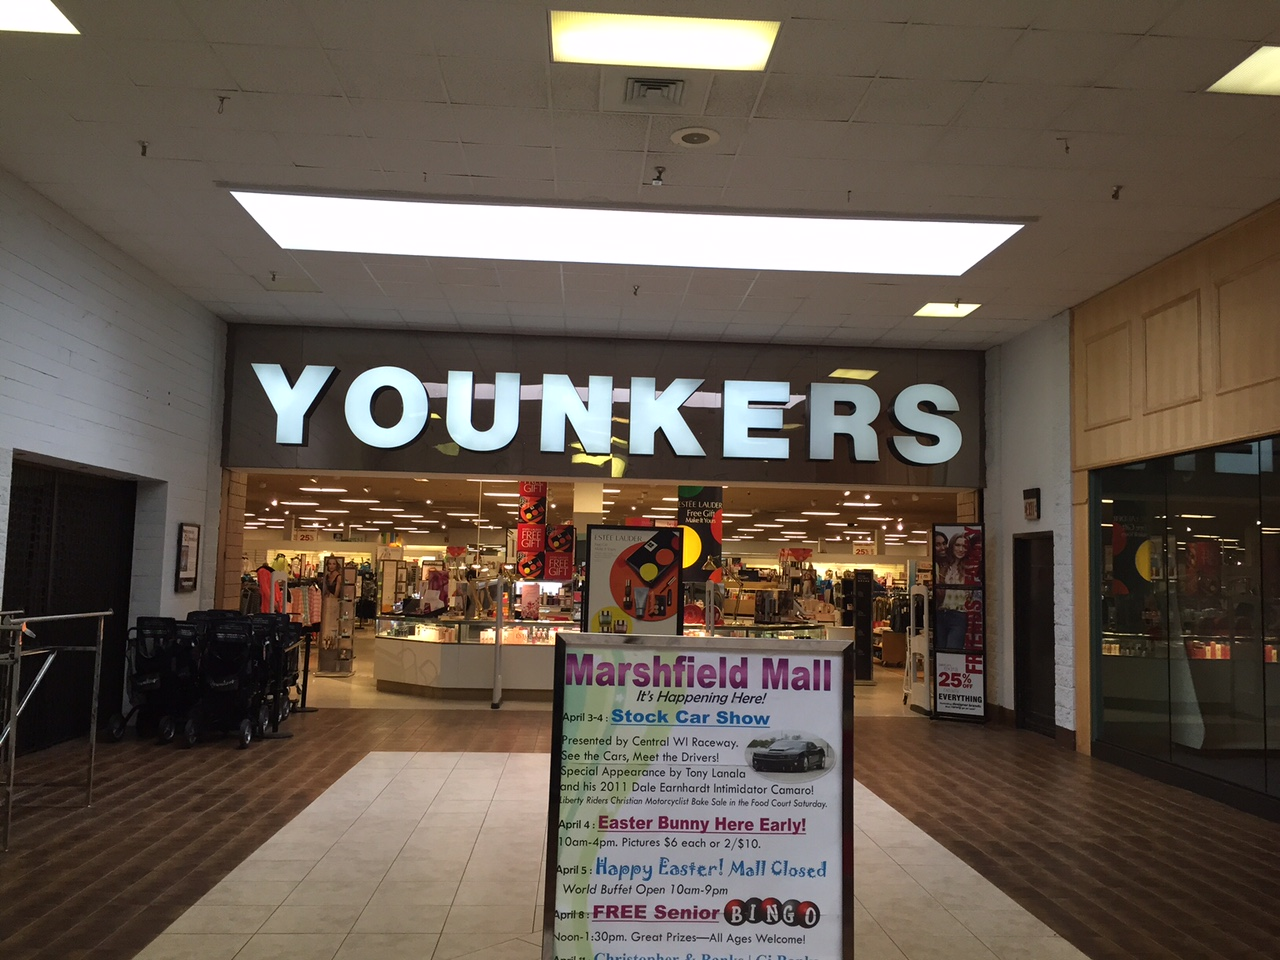 Younkers @Younkers Better brands, bigger savings. We've got the scoop on offers, style tips & tricks, and fashion-insider news. Use #Younkers to show us your for fashion.